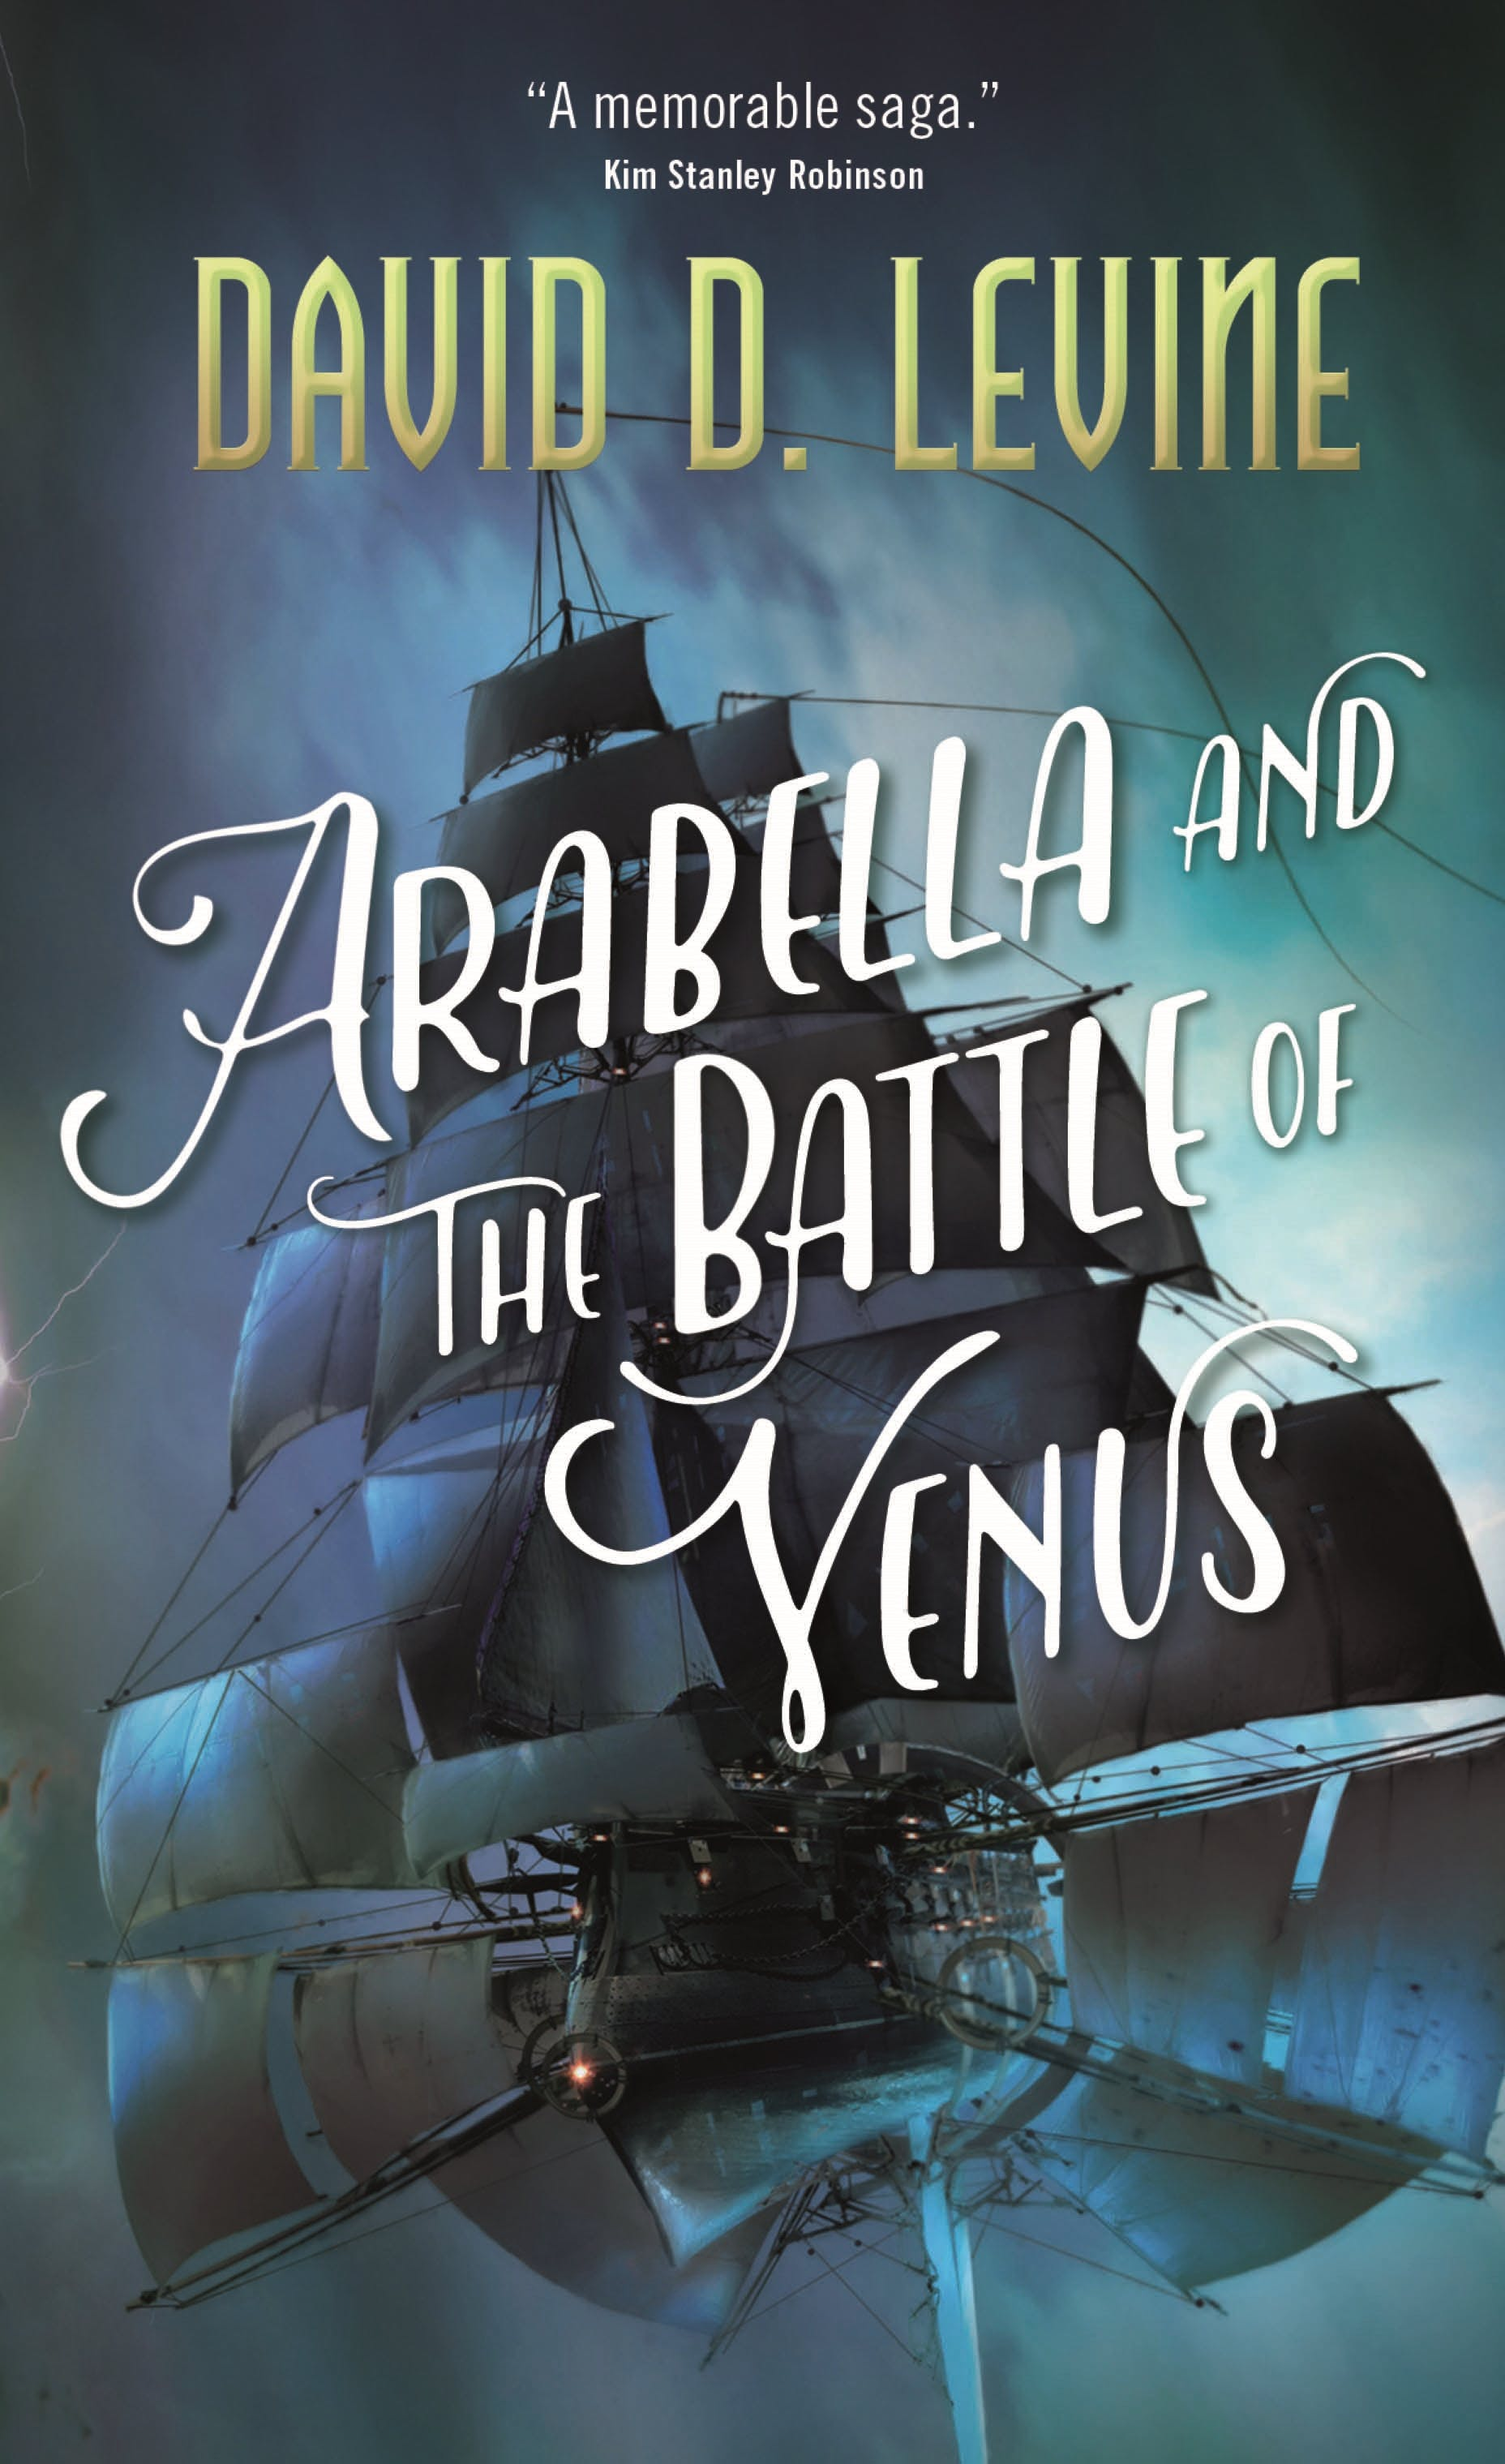 Image of Arabella and the Battle of Venus